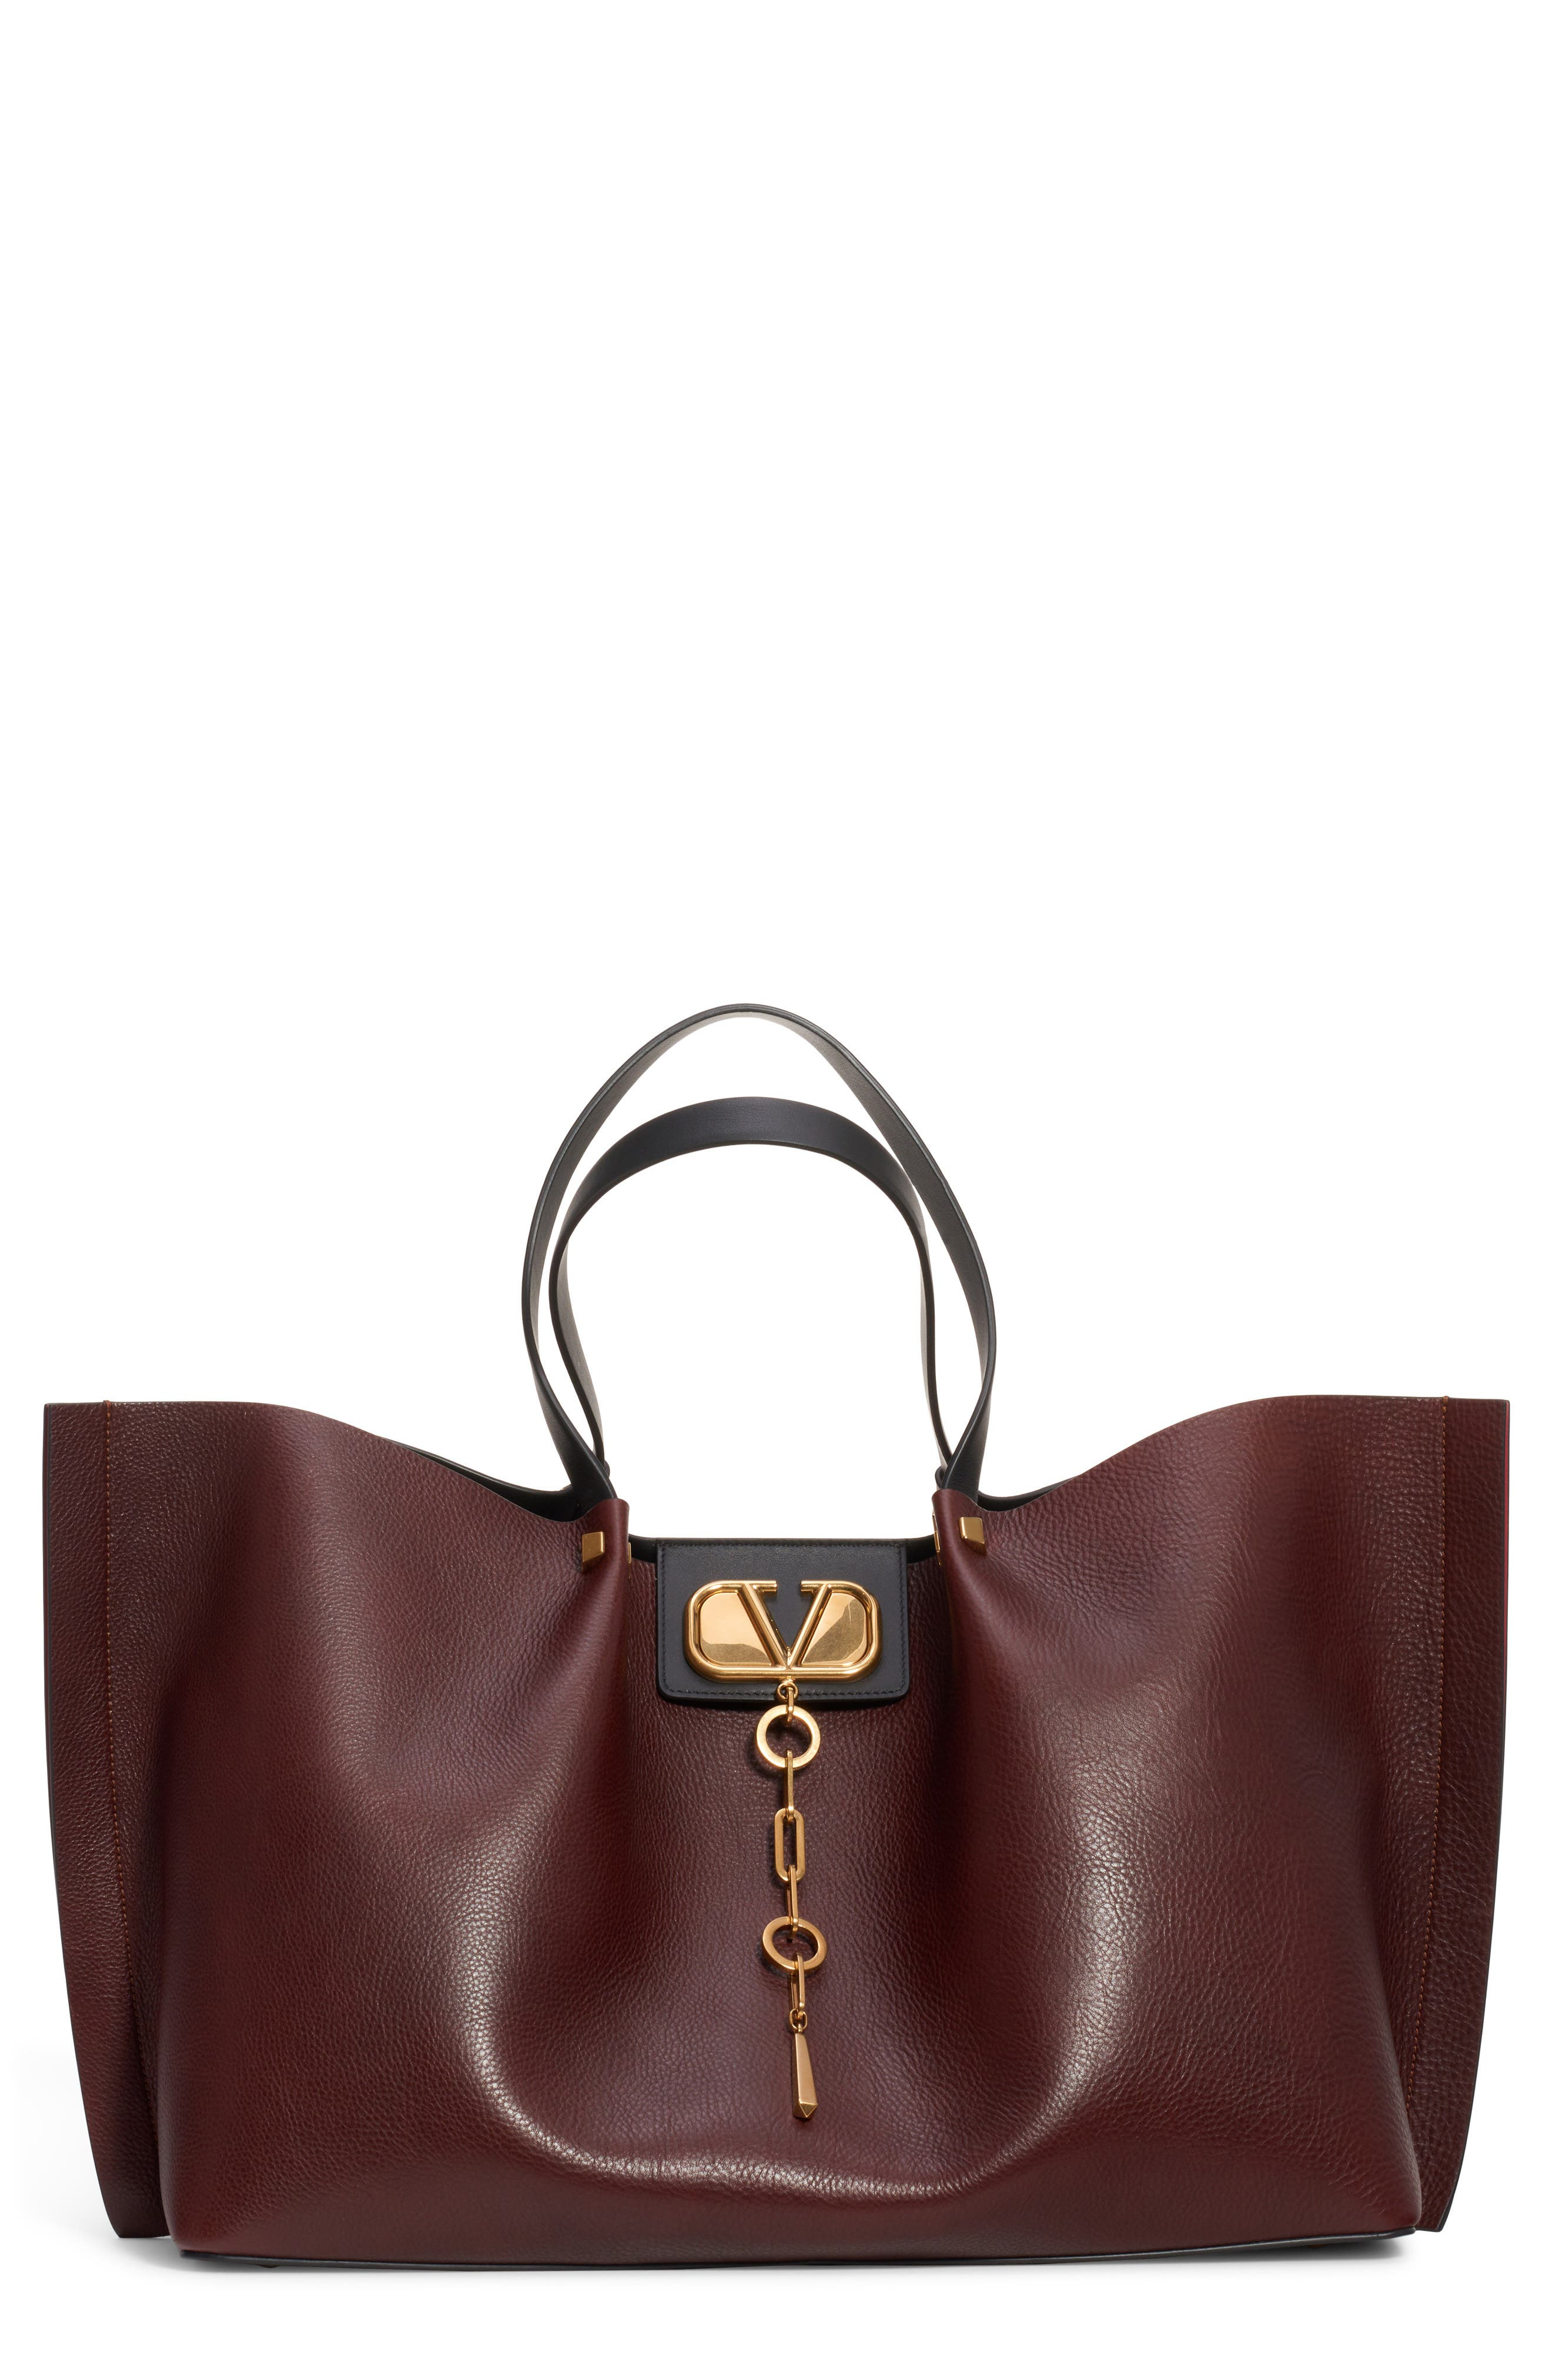 Large Go Logo Leather Tote,                             Main thumbnail 1, color,                             MORO/ NERO/ ROUGE PUR